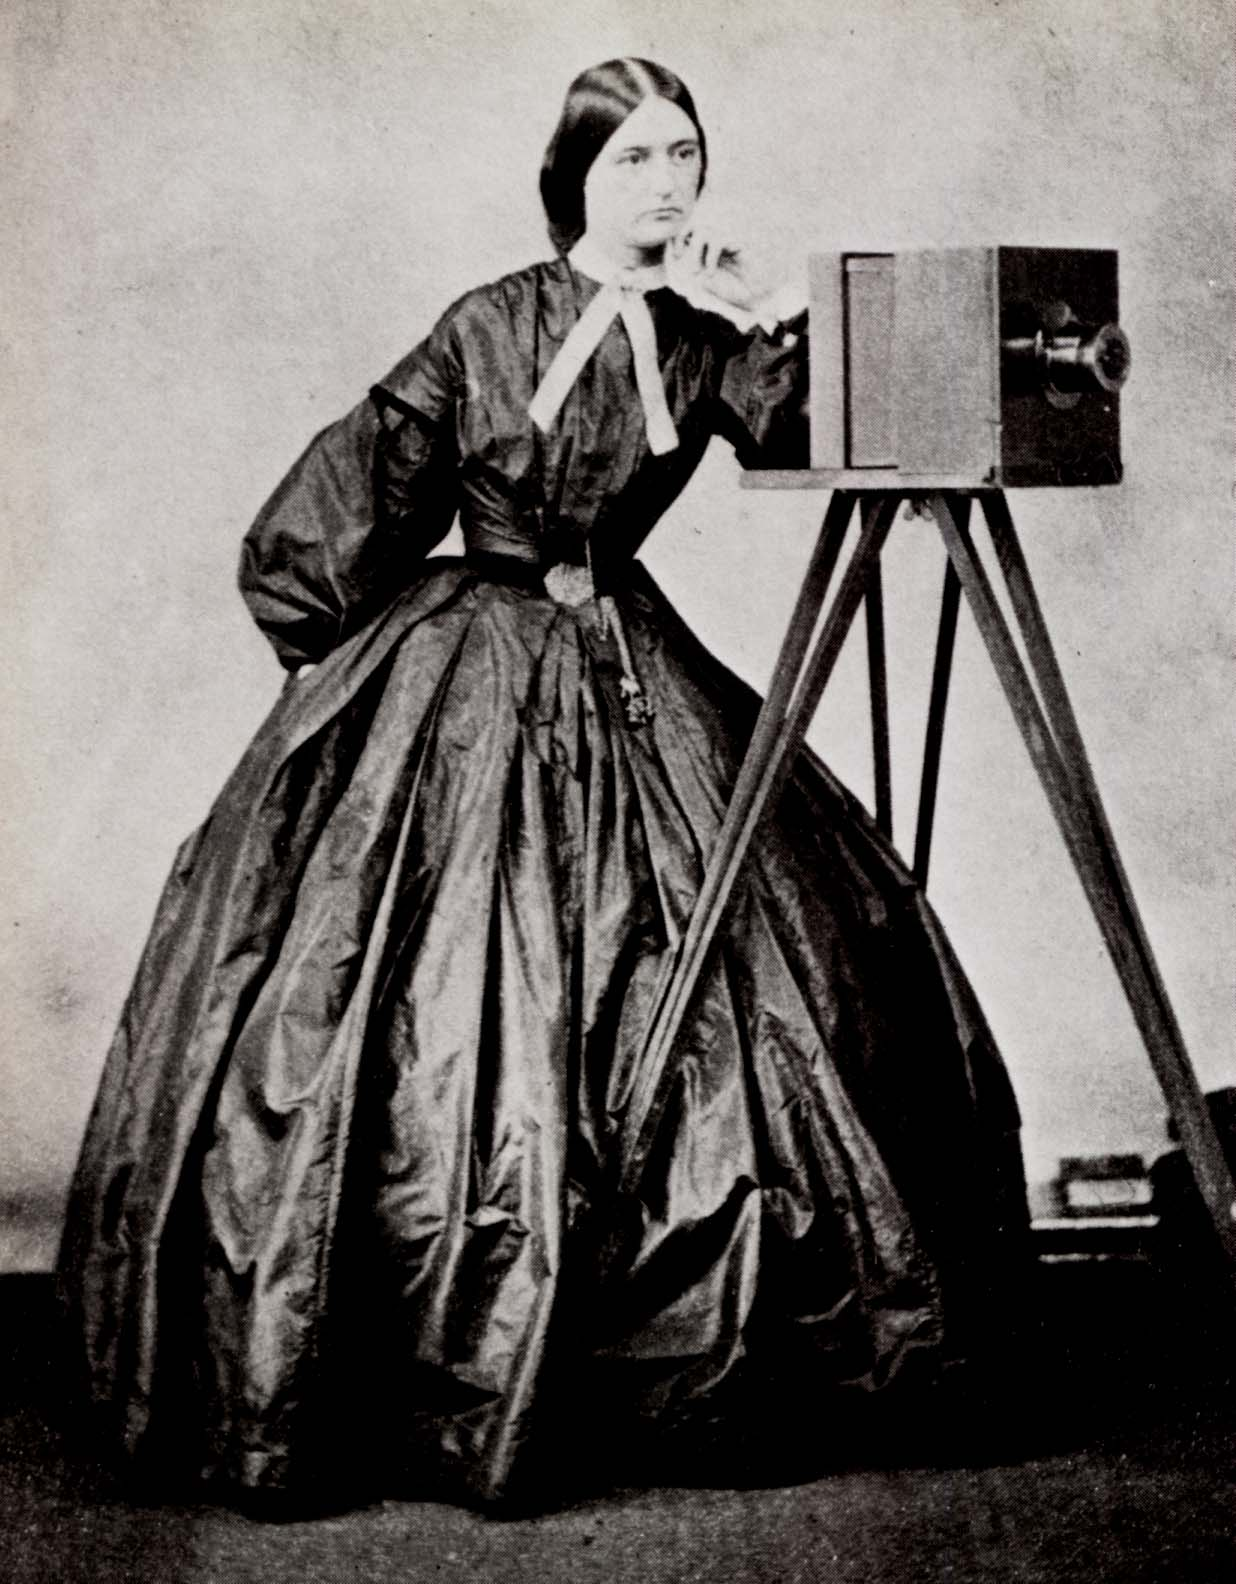 photographers history 1849 civil war 1870 lady photographer female 1918 photograph photographs jocelyn photohistory sussex american cameras 19th clothing frances